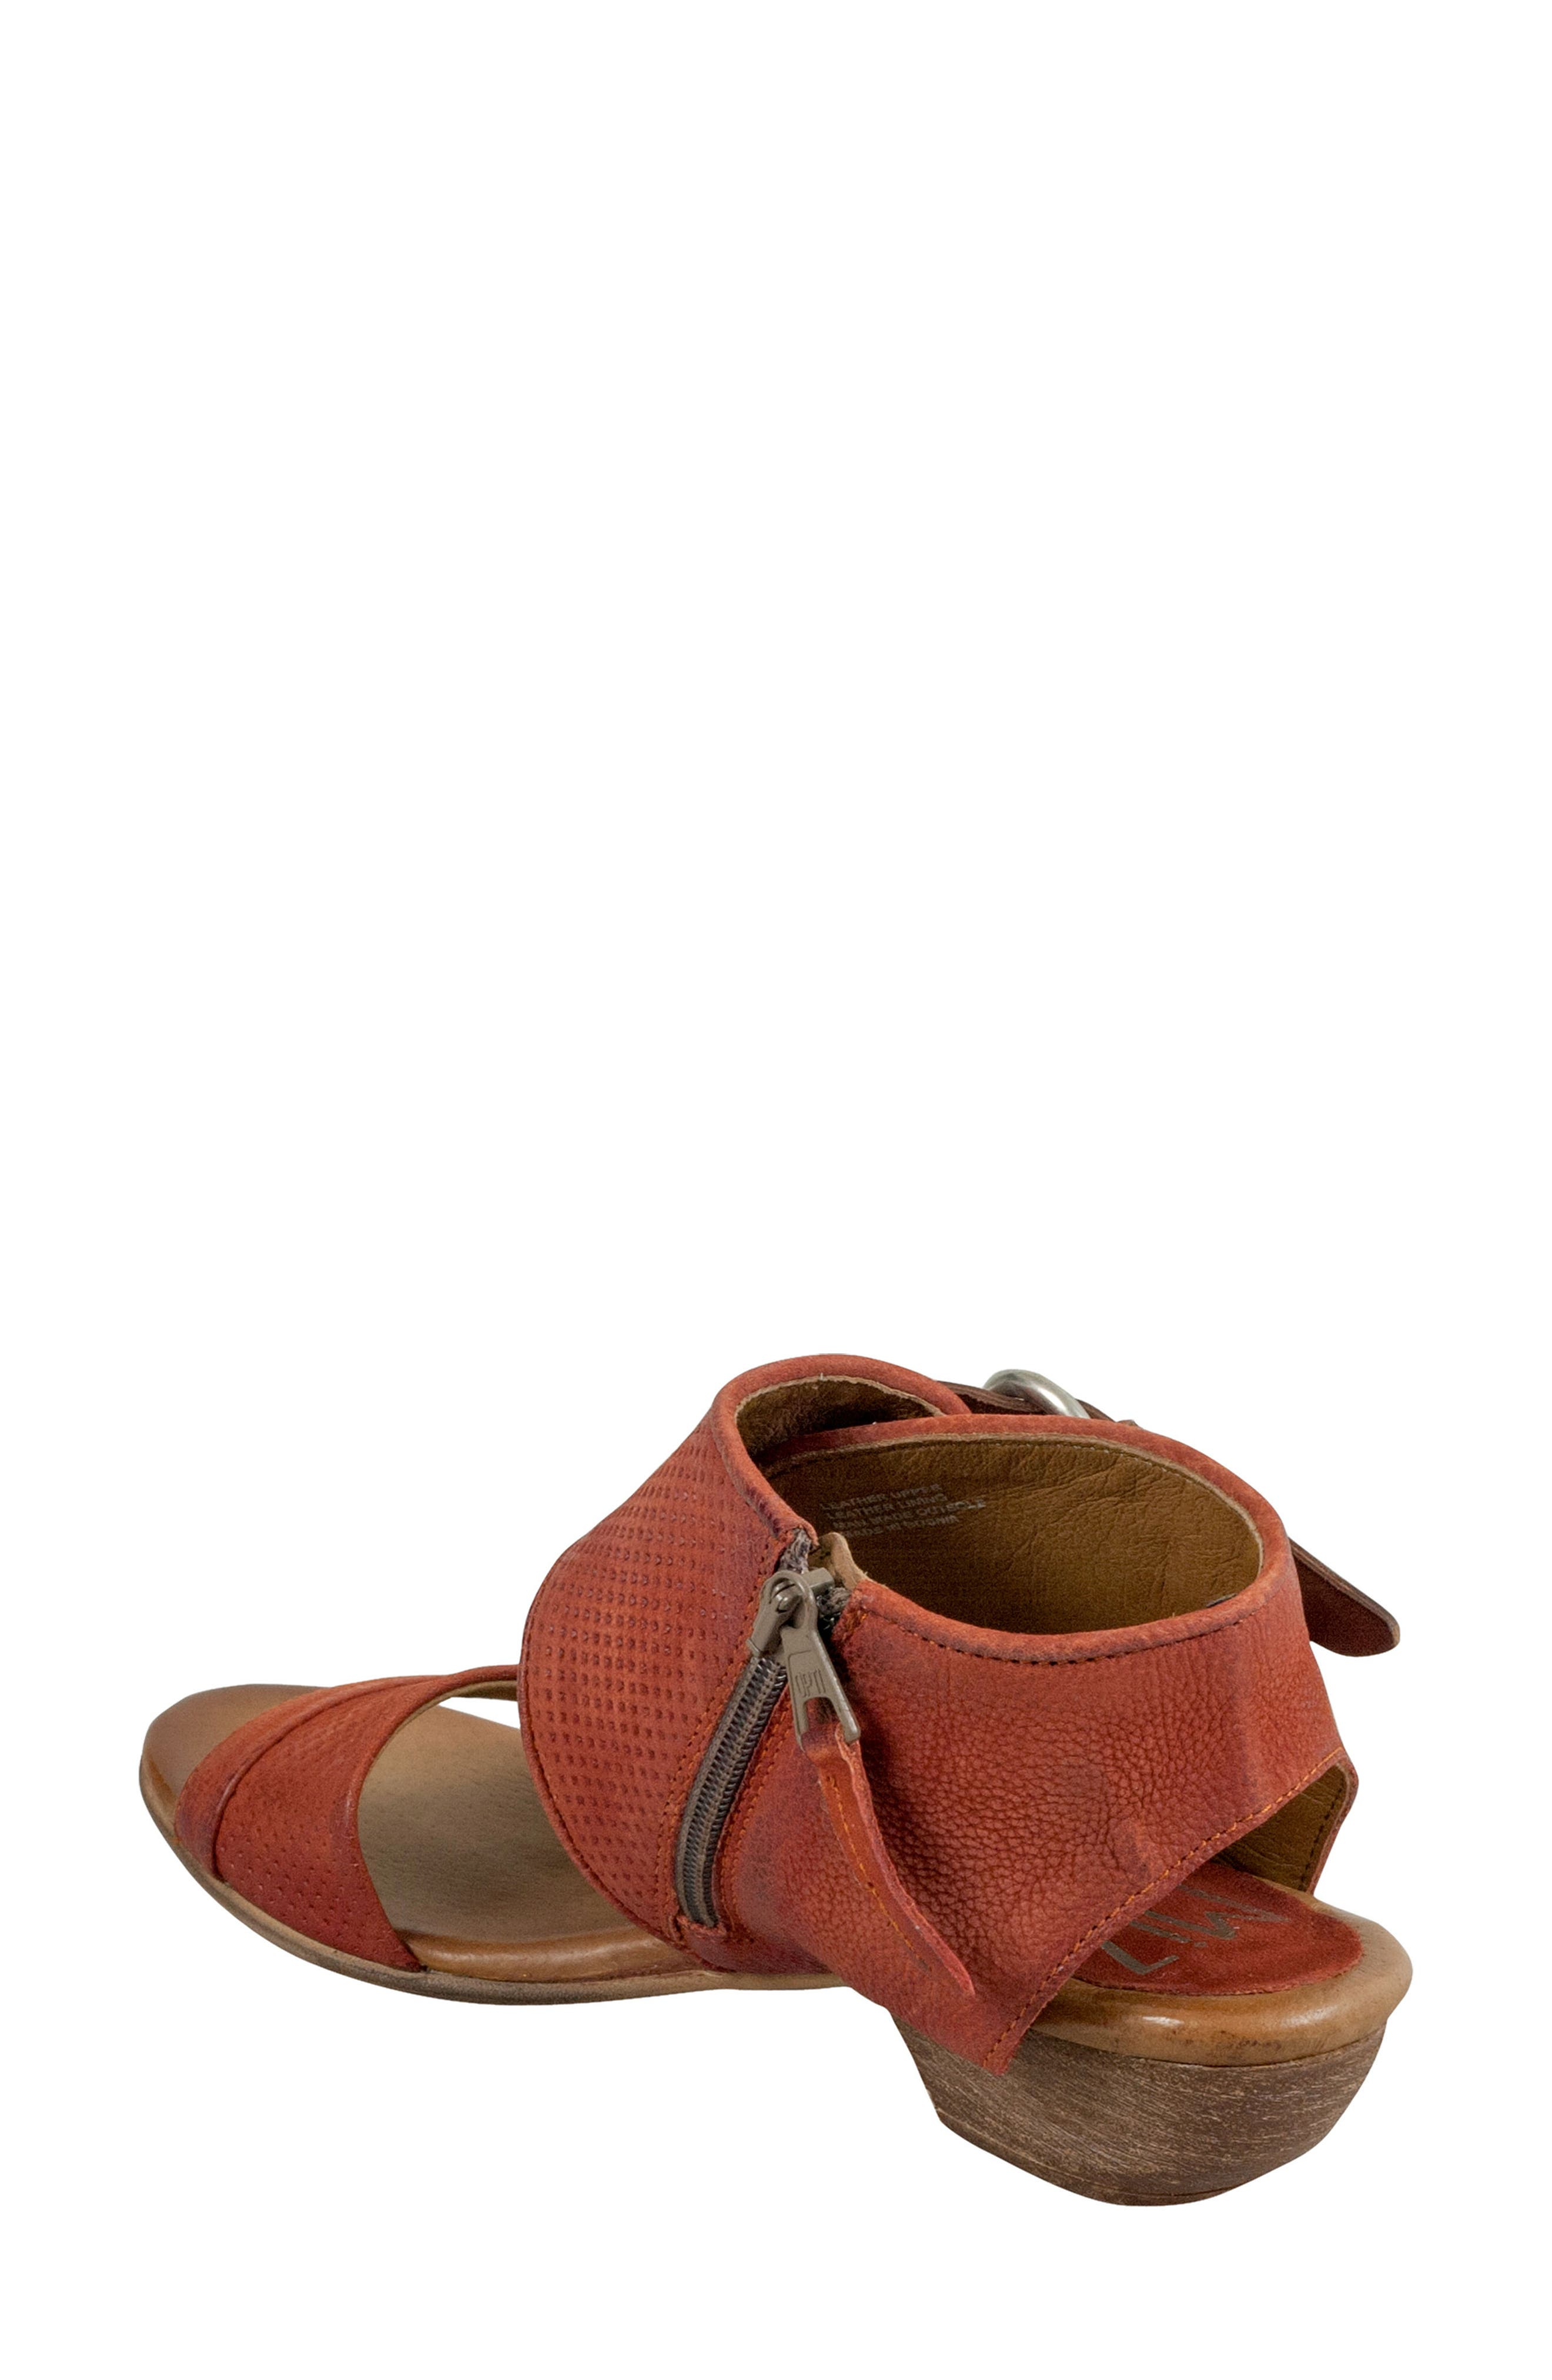 Chatham Textured Sandal,                             Alternate thumbnail 2, color,                             Rust Leather